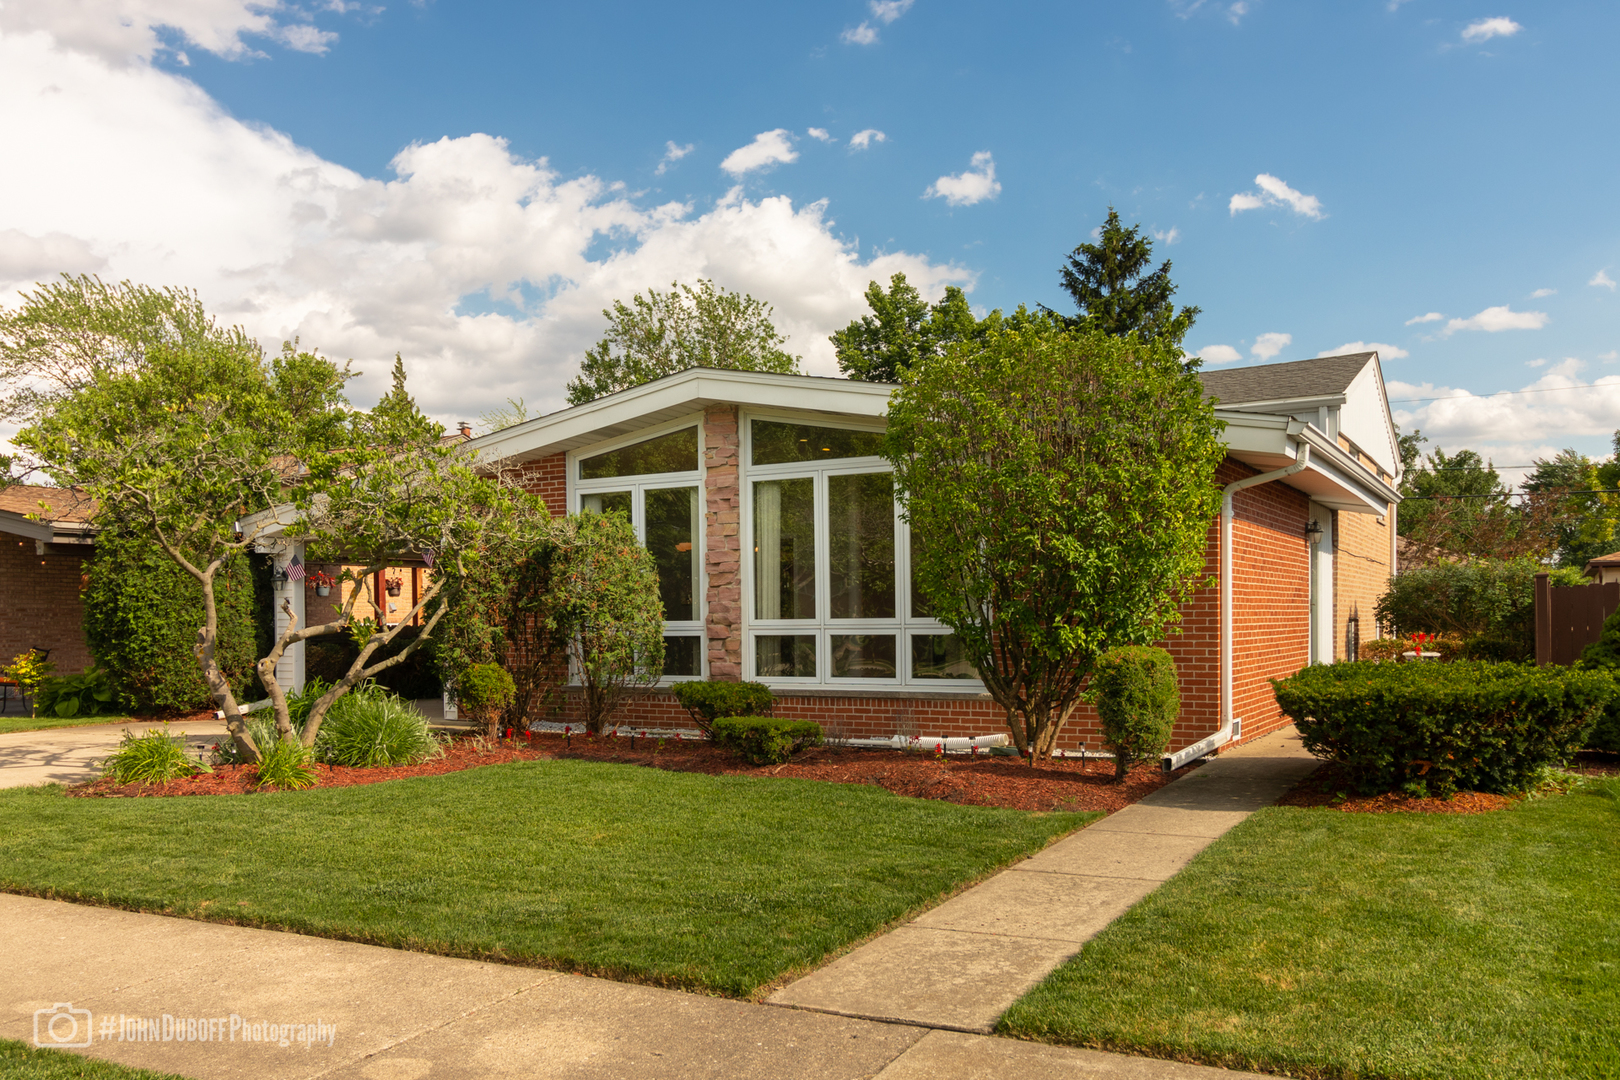 8545 West NORMAL Avenue 60714 - One of Niles Homes for Sale